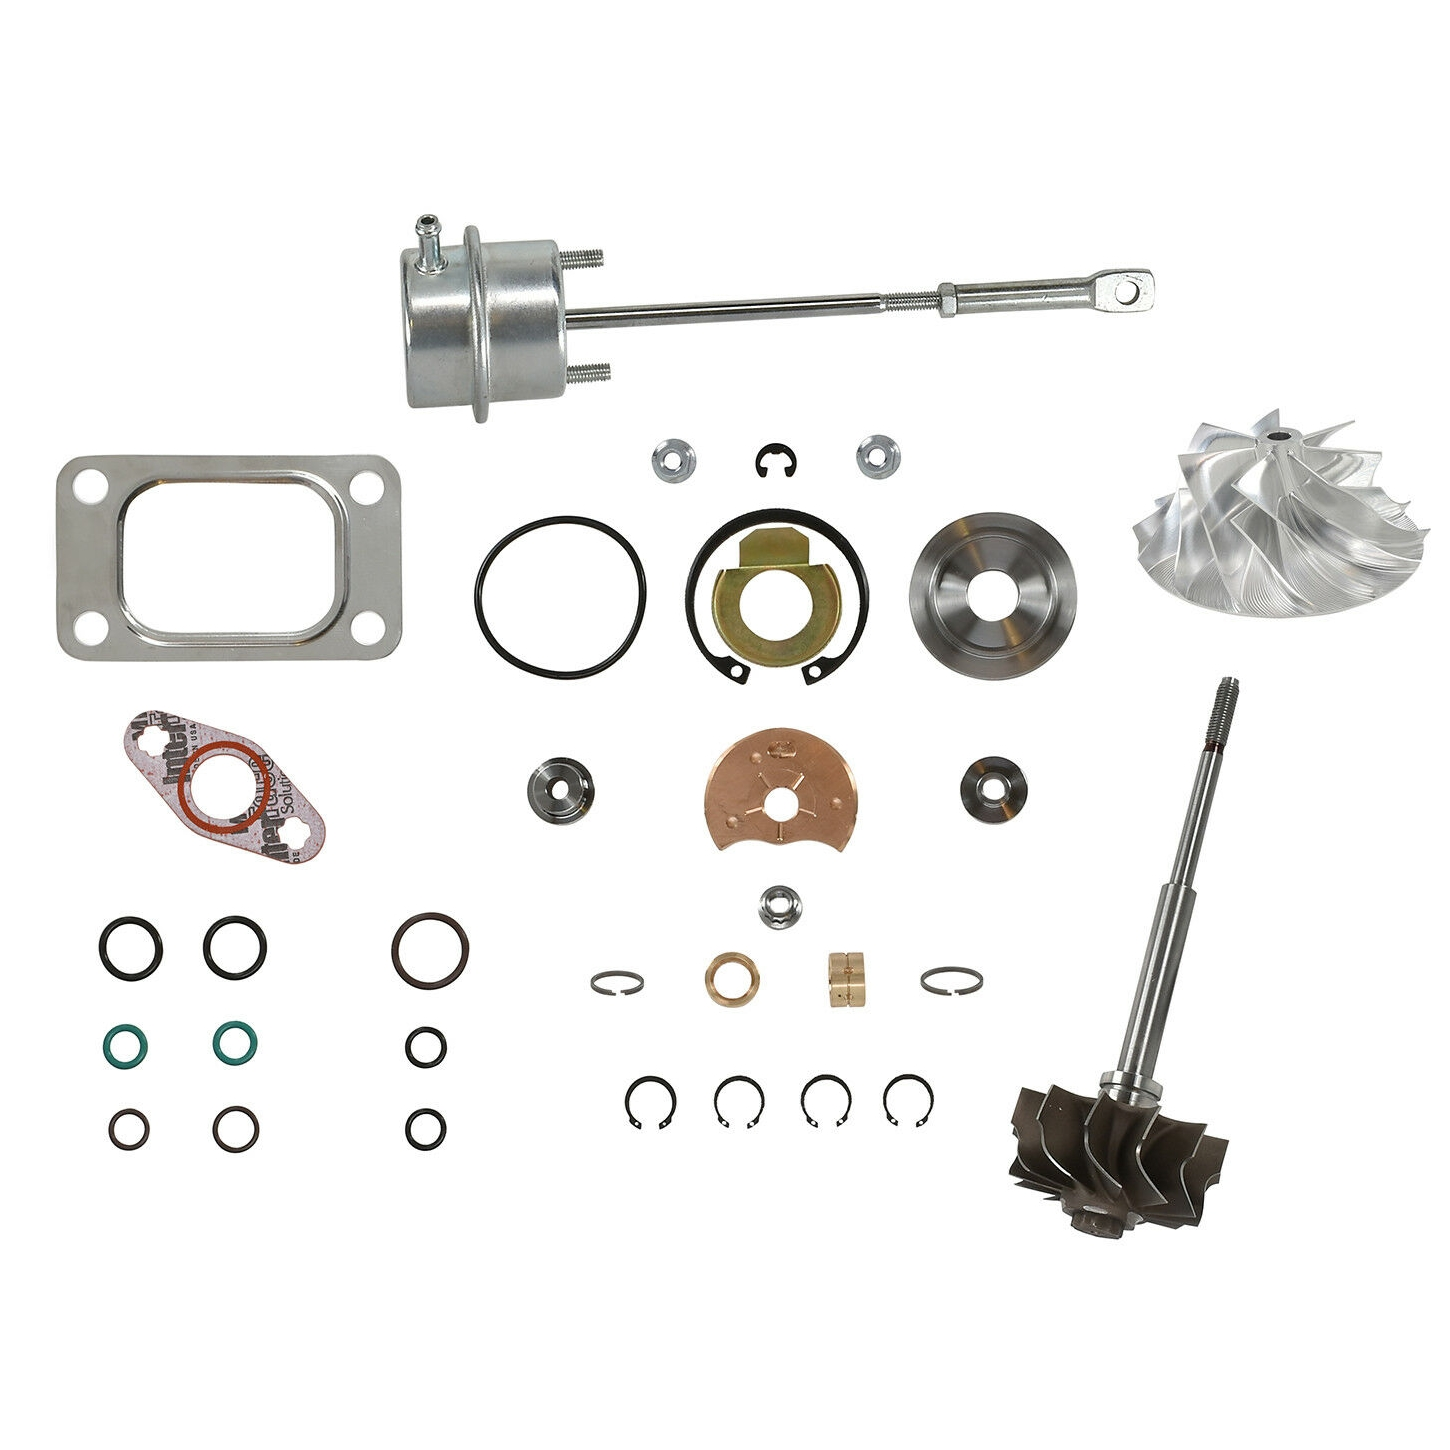 HE351CW Turbo Rebuild Kit Billet Wheel Wastegate Actuator Turbine Shaft For 04.5-07 5.9L ISB Dodge Ram Cummins Diesel